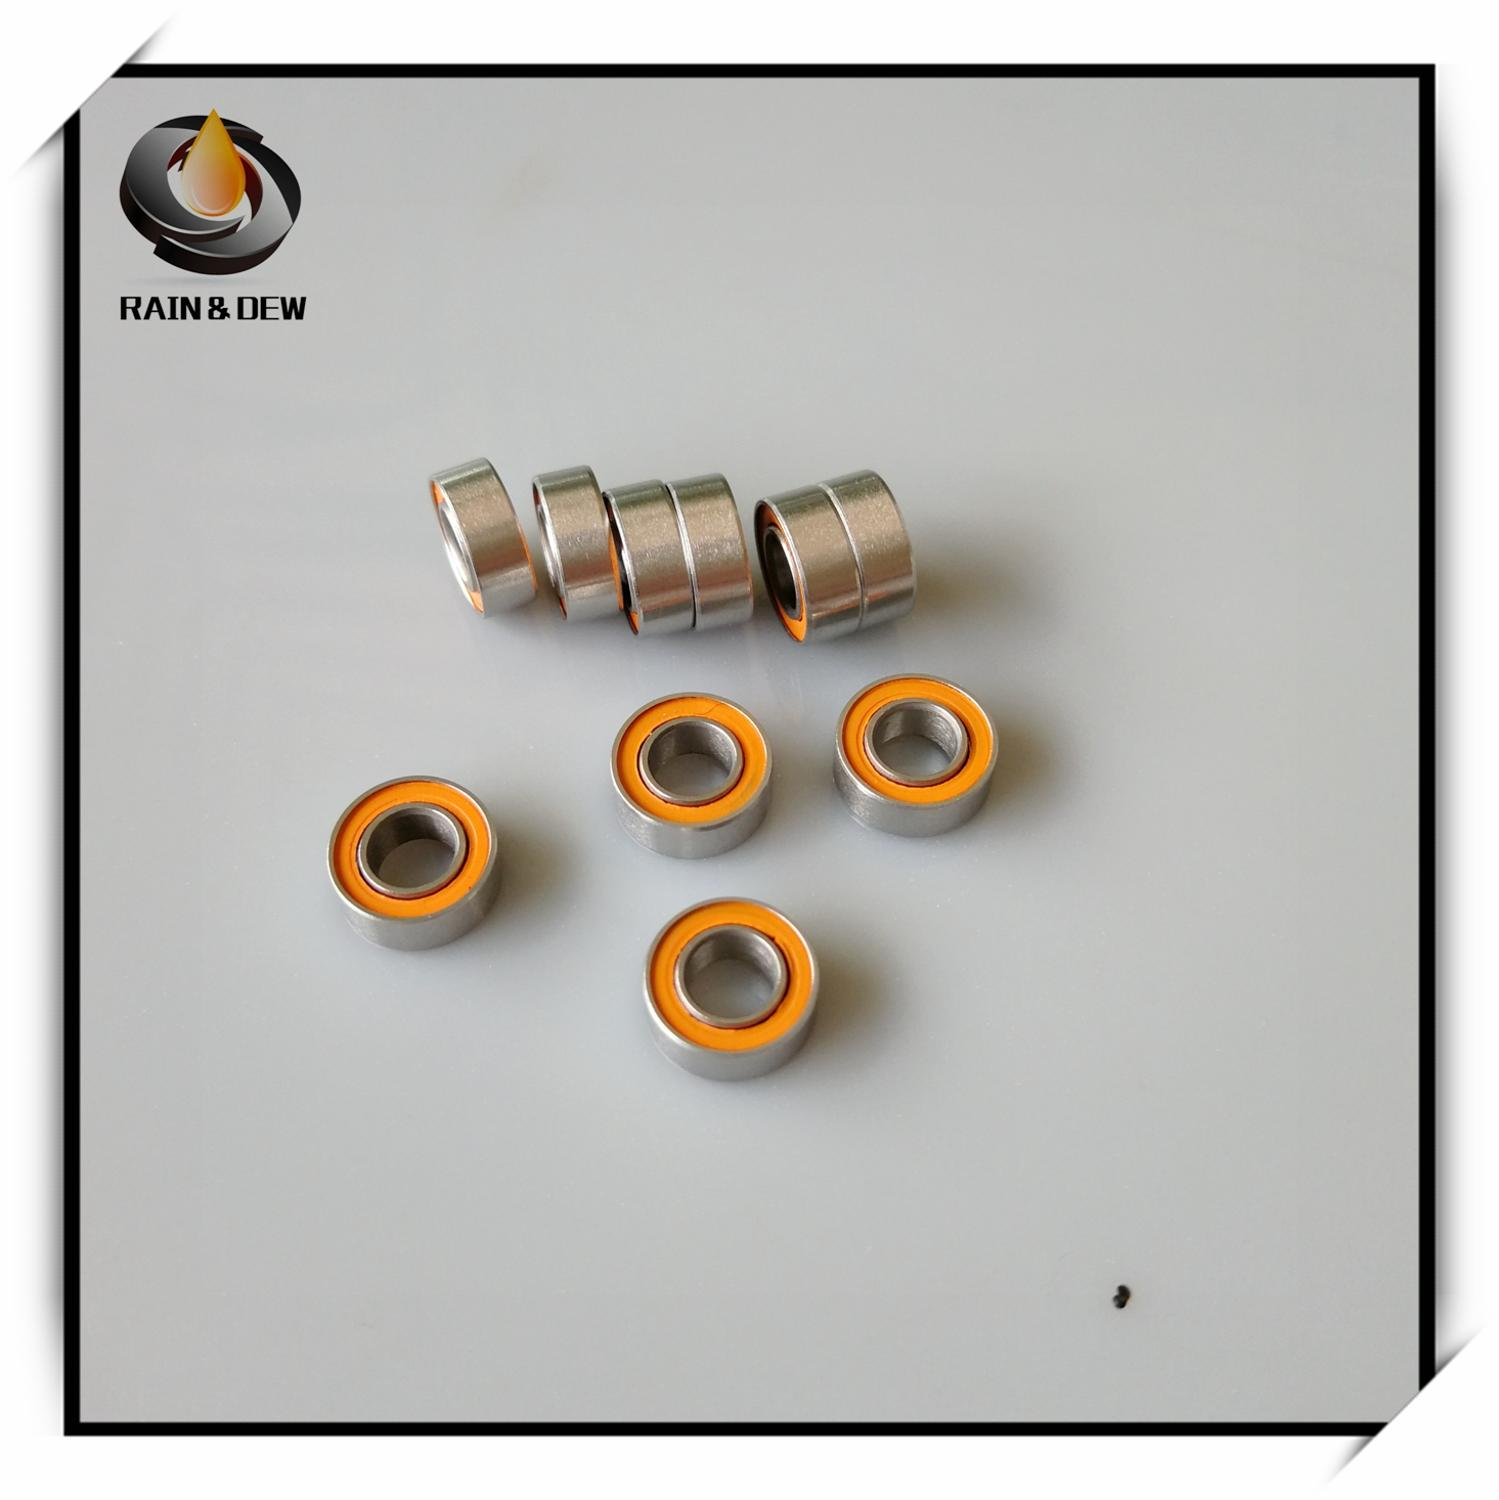 1Pcs  SMR84 2RS CB ABEC7 4X8X3 Mm SMR84-2RS ABEC-7  Stainless Steel Hybrid Si3n4 Ceramic Ball Bearing SMR84 2RS MR84